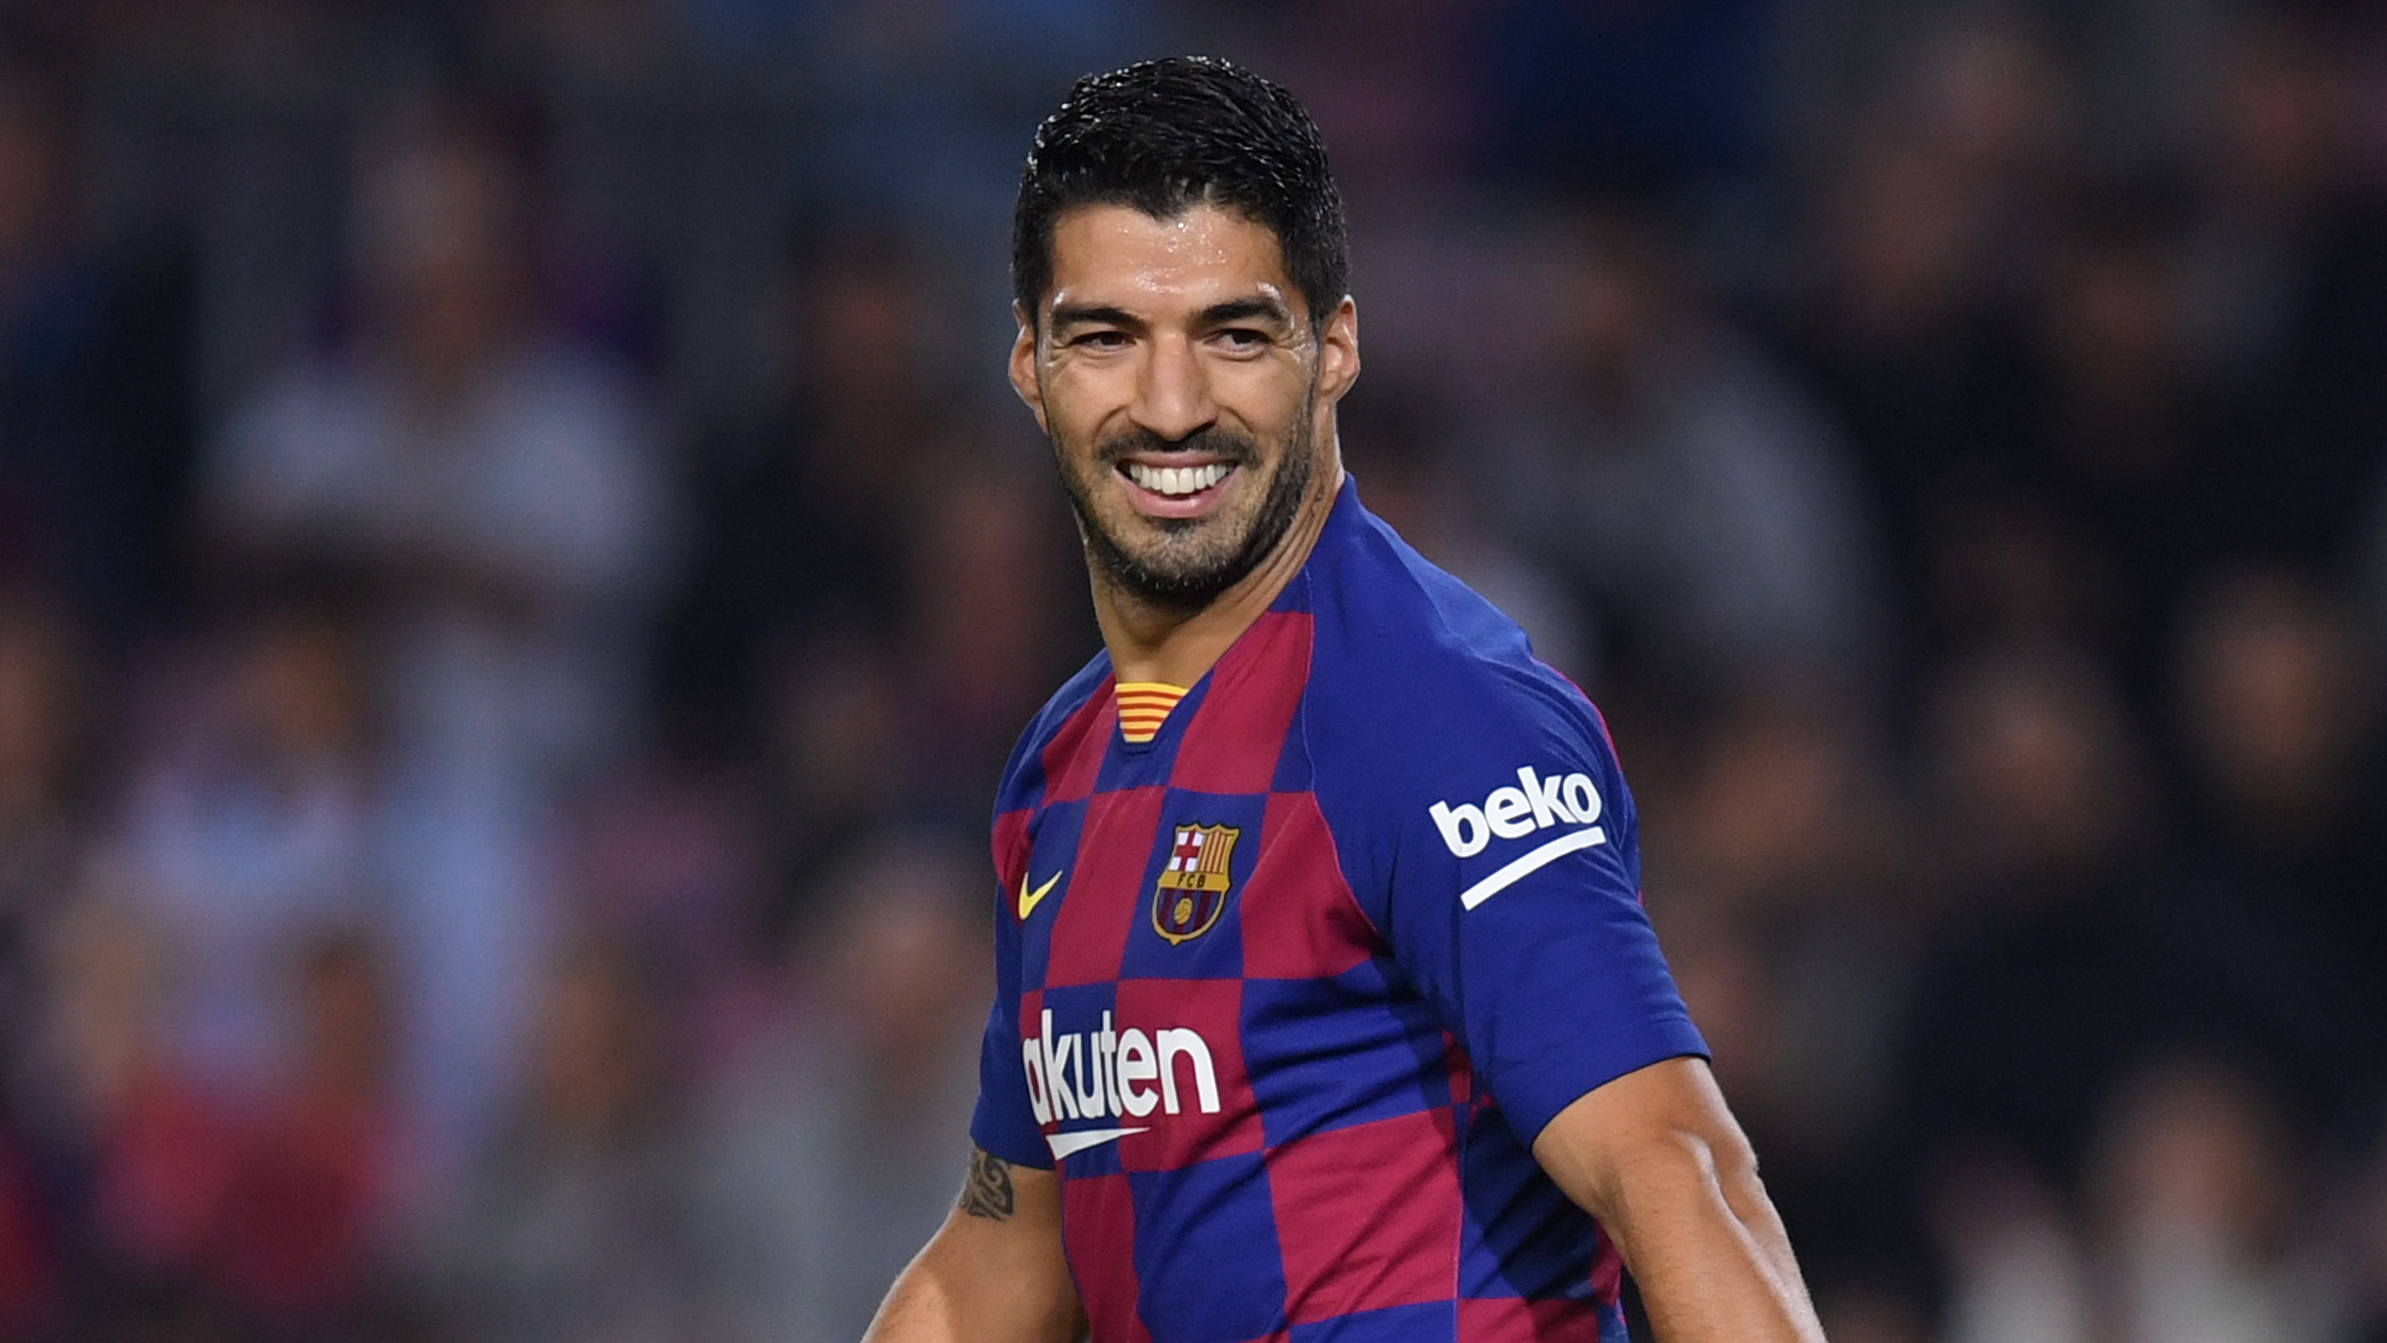 'Suarez Wants To Come To MLS'